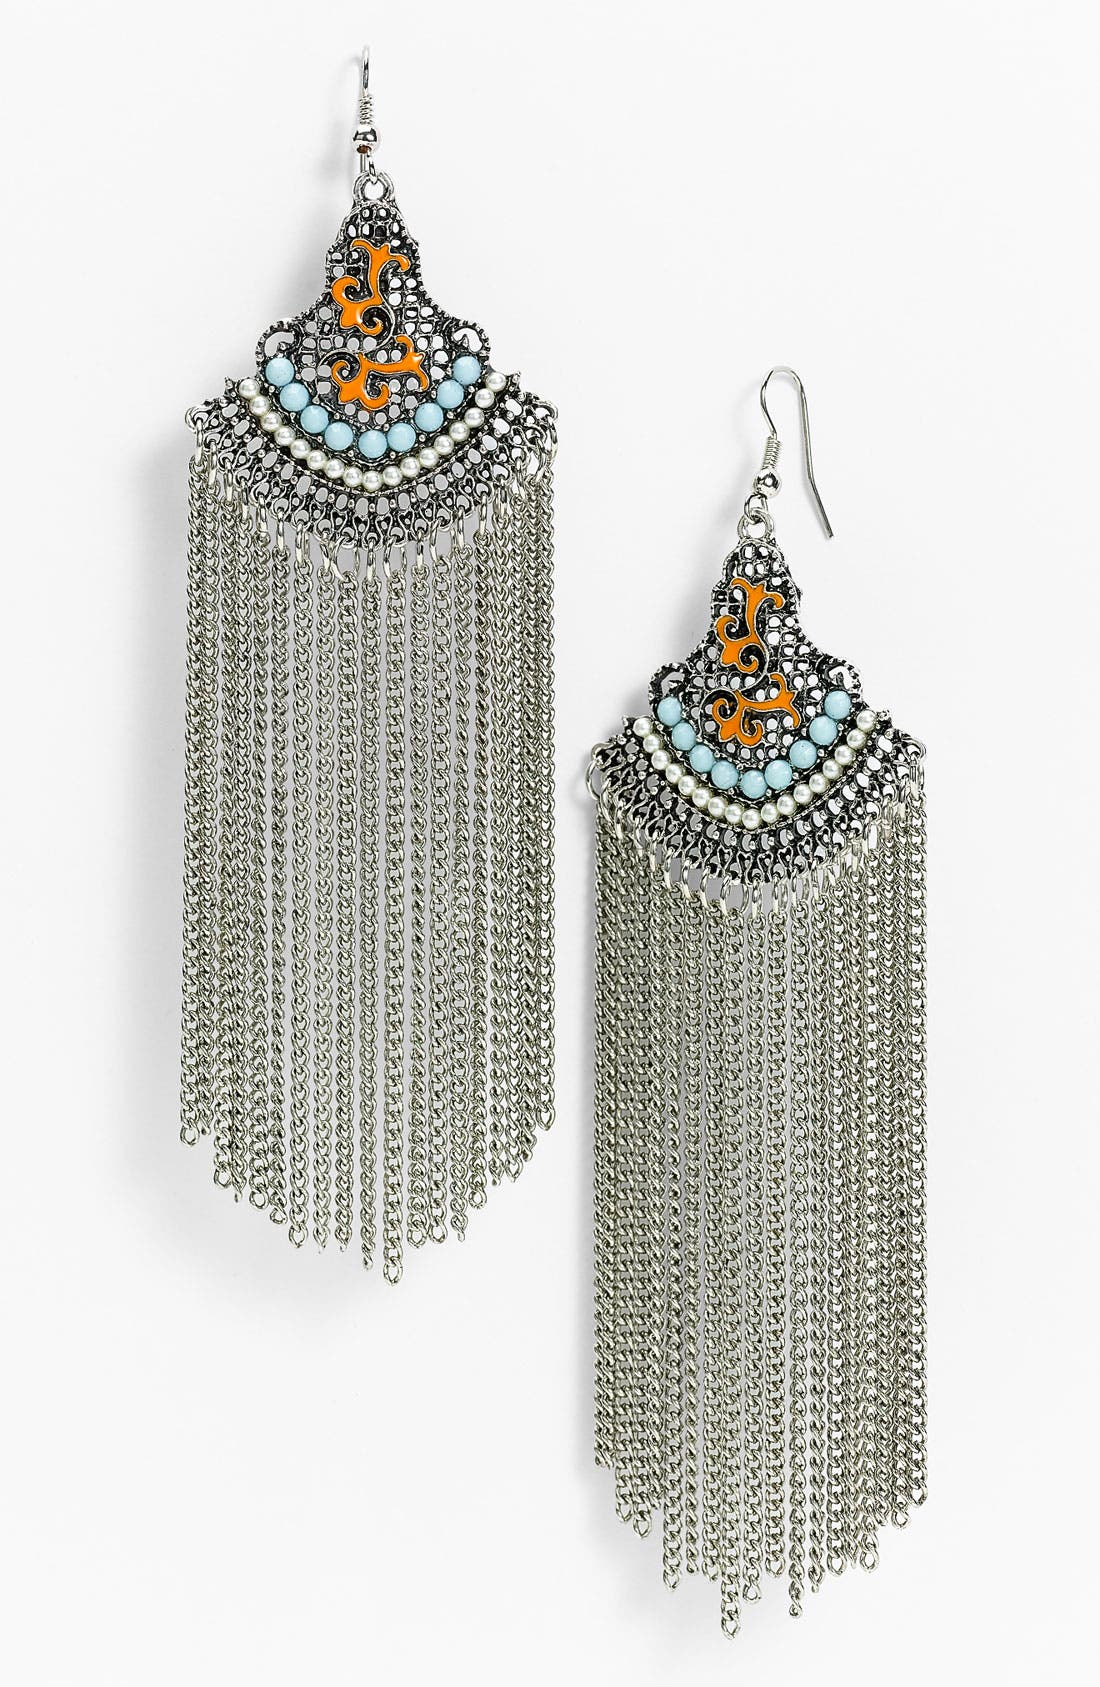 CARA Couture 'Tribal' Chain Fringe Statement Earrings, Main, color, 040